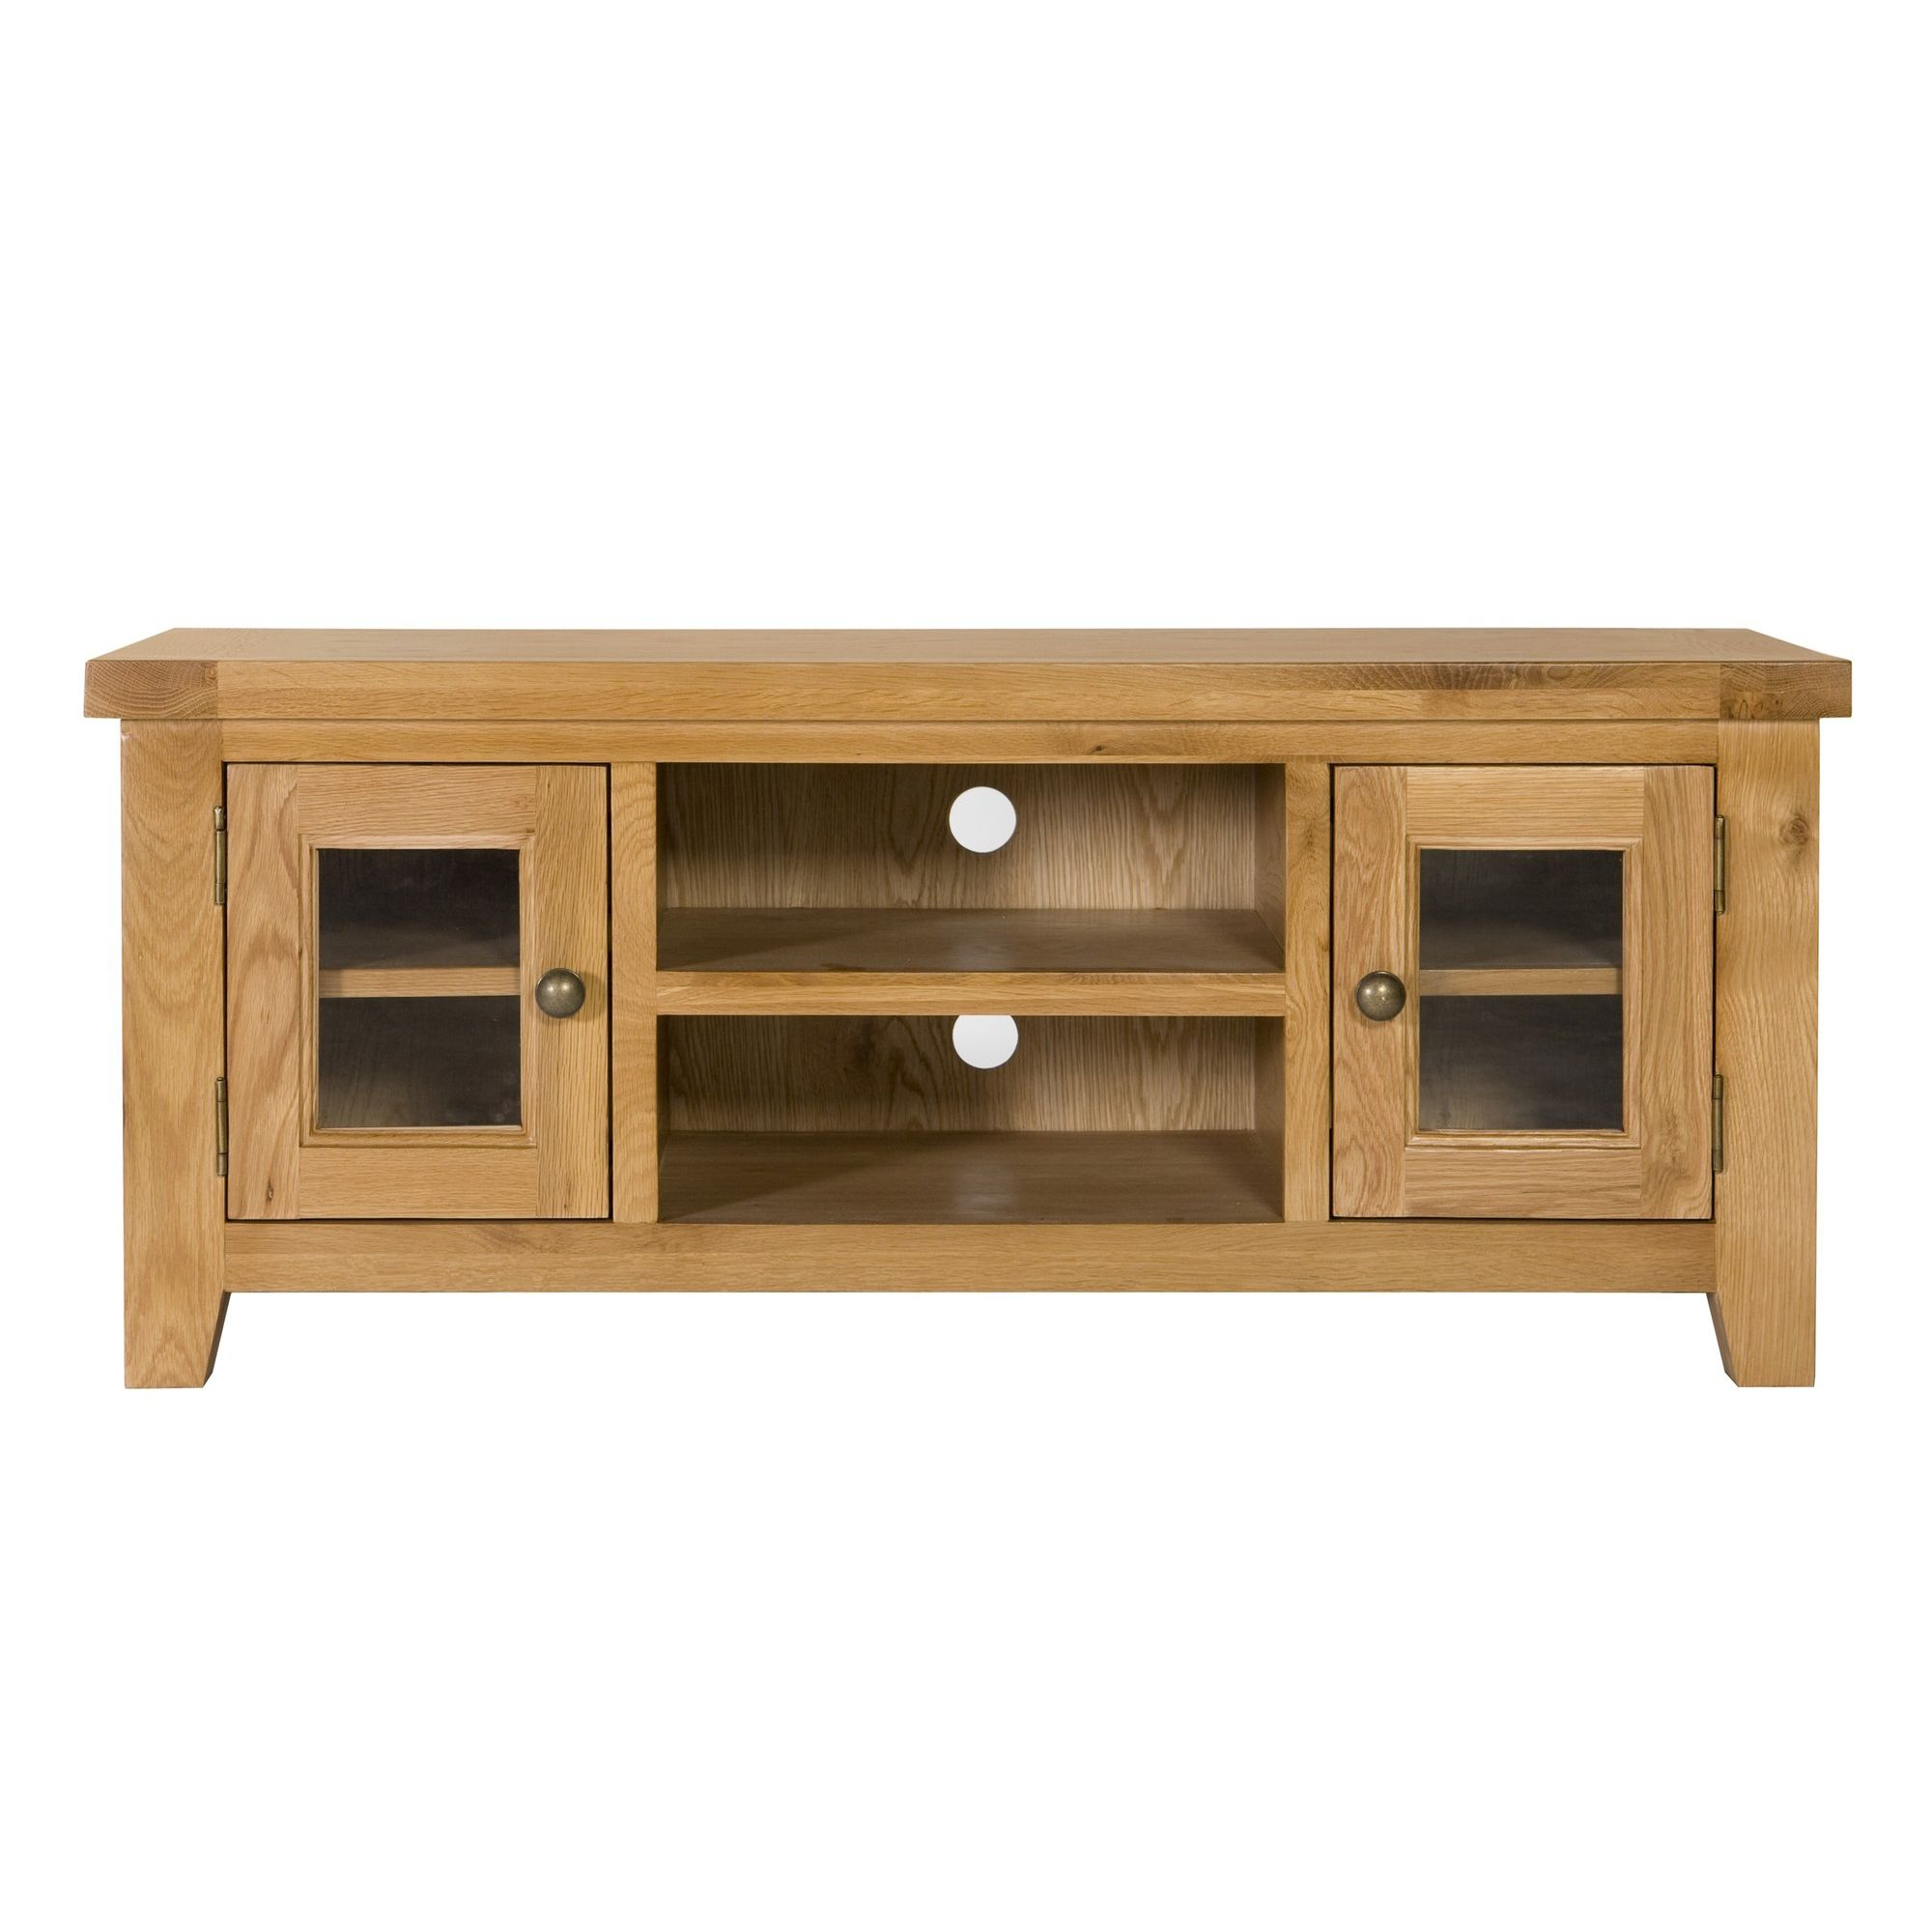 IFD Ludmilla Dining Large TV Cabinet in Warm Lacquer at Tesco Direct